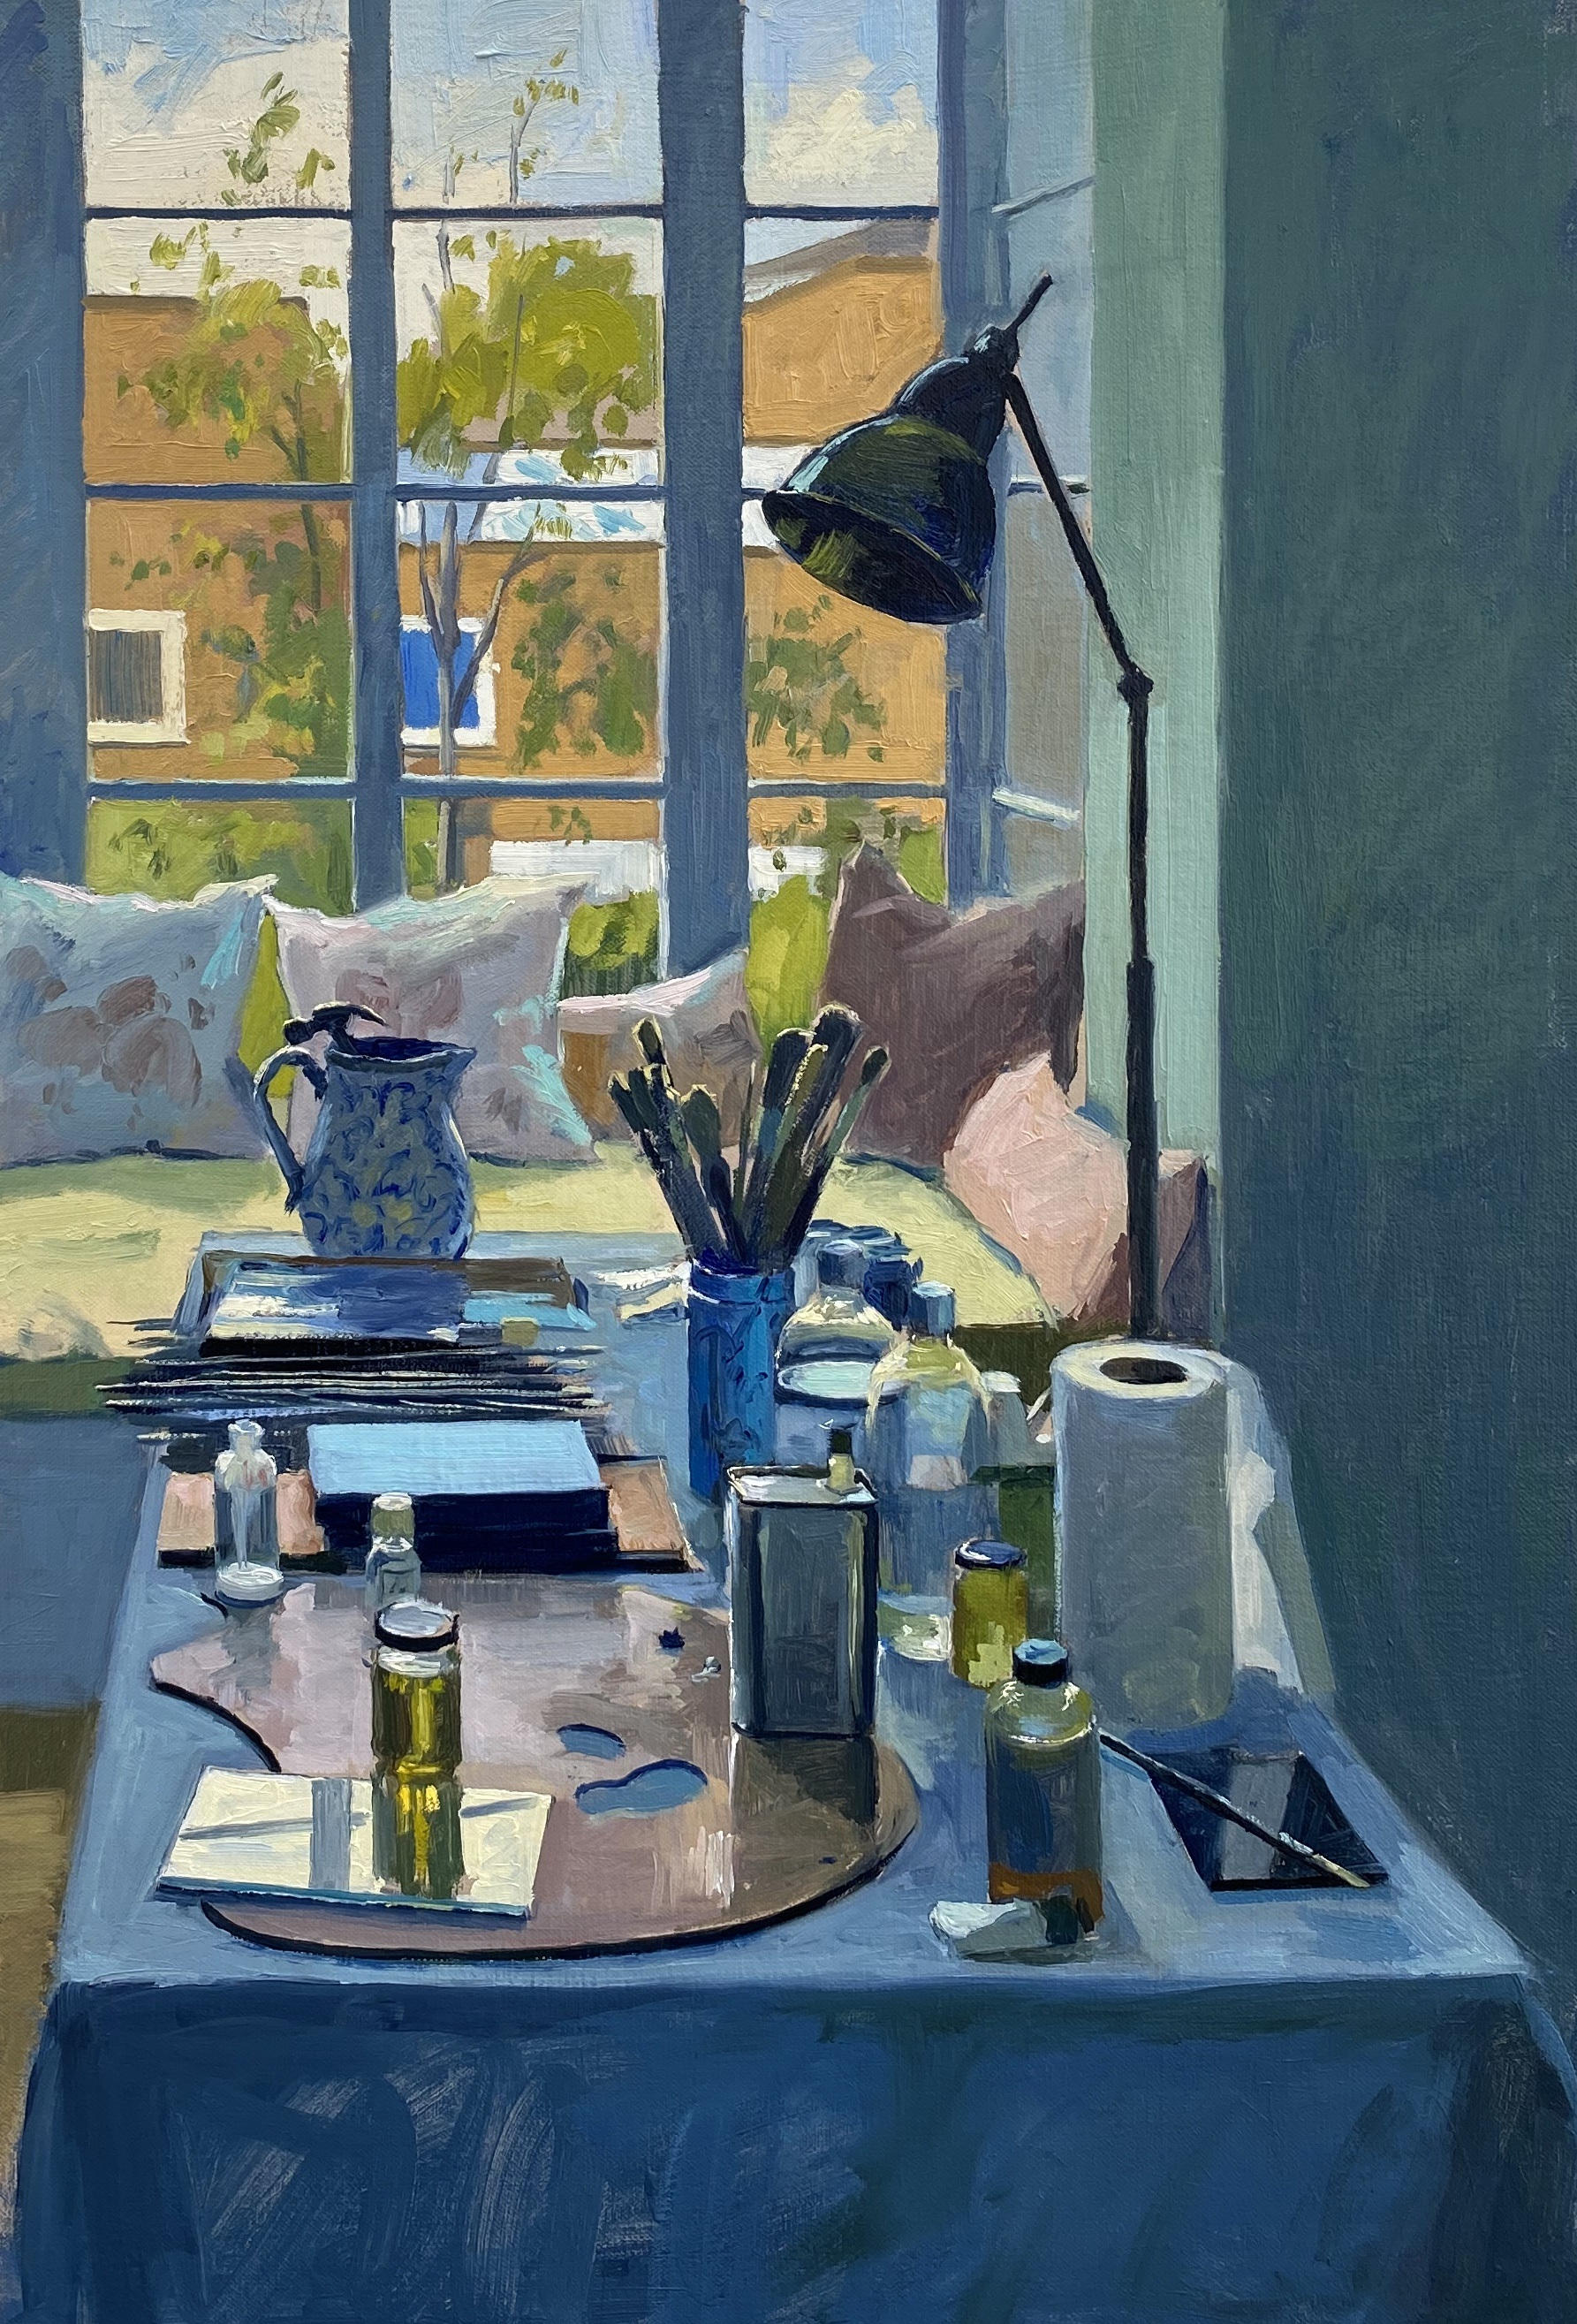 Studio Reflections in Blue